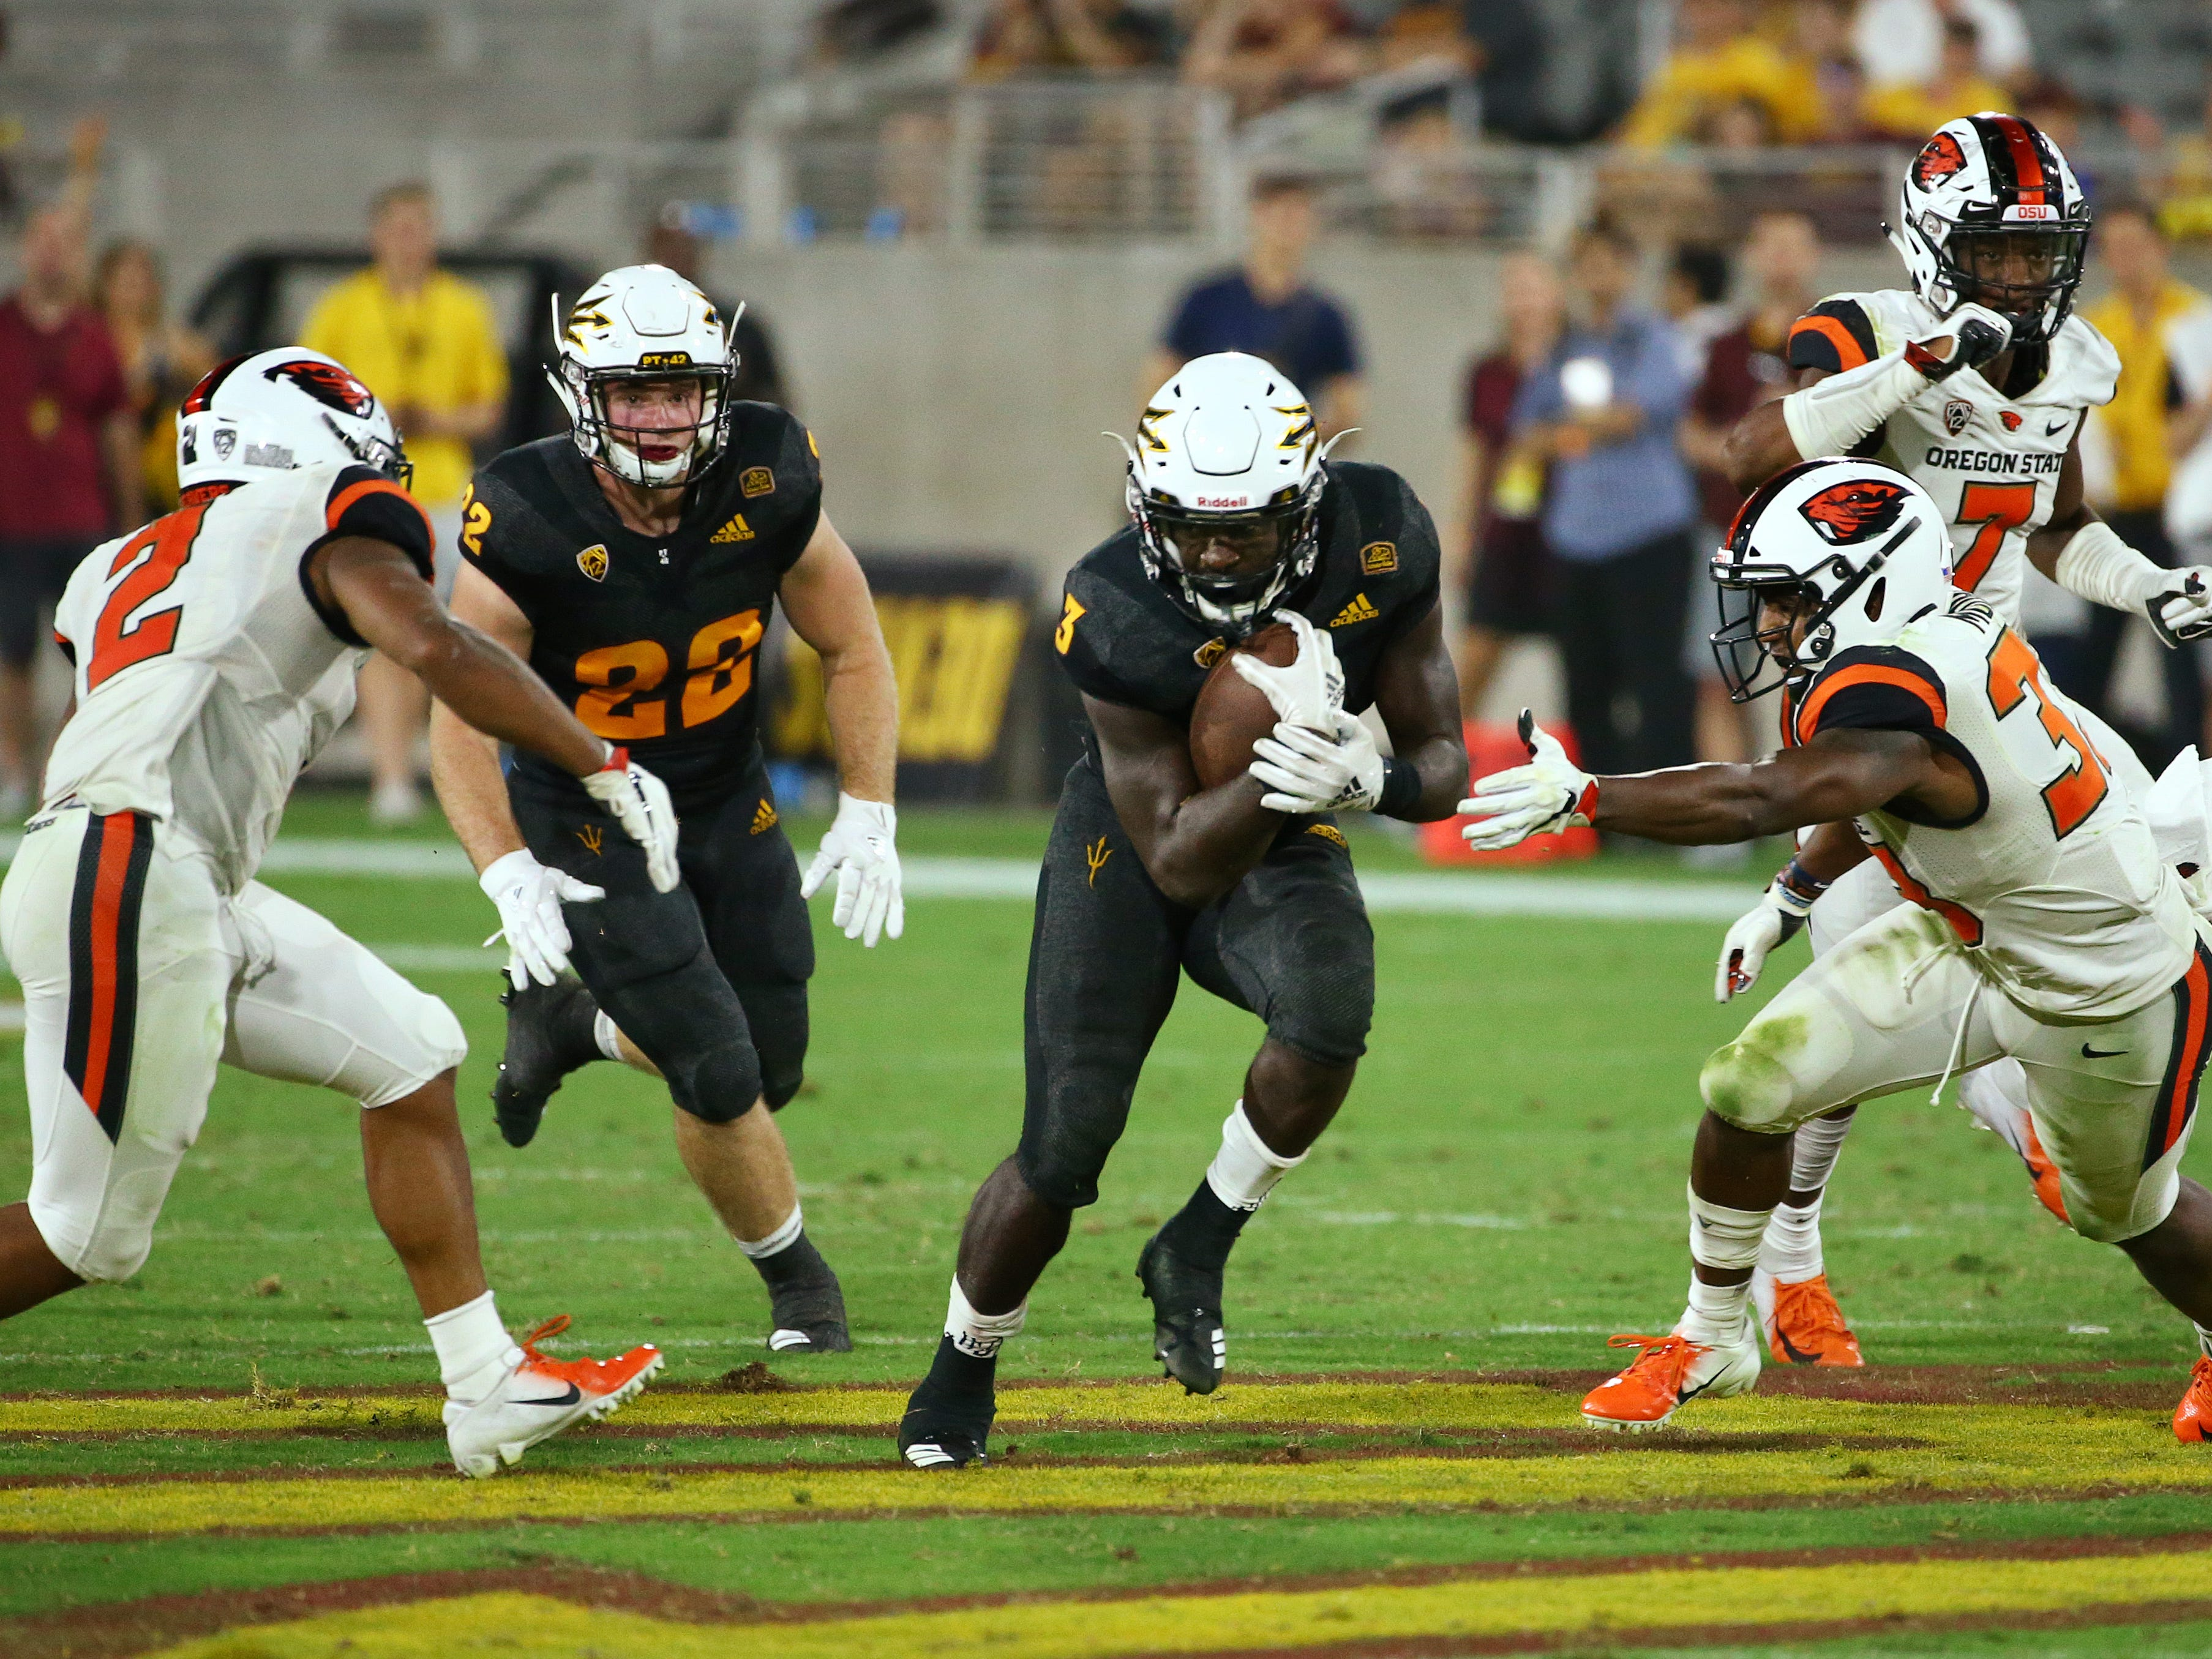 Arizona State running back Eno Benjamin on this play reached 312 yards for the game against Oregon State in the second half on Sep. 29, 2018, at Sun Devil Stadium.